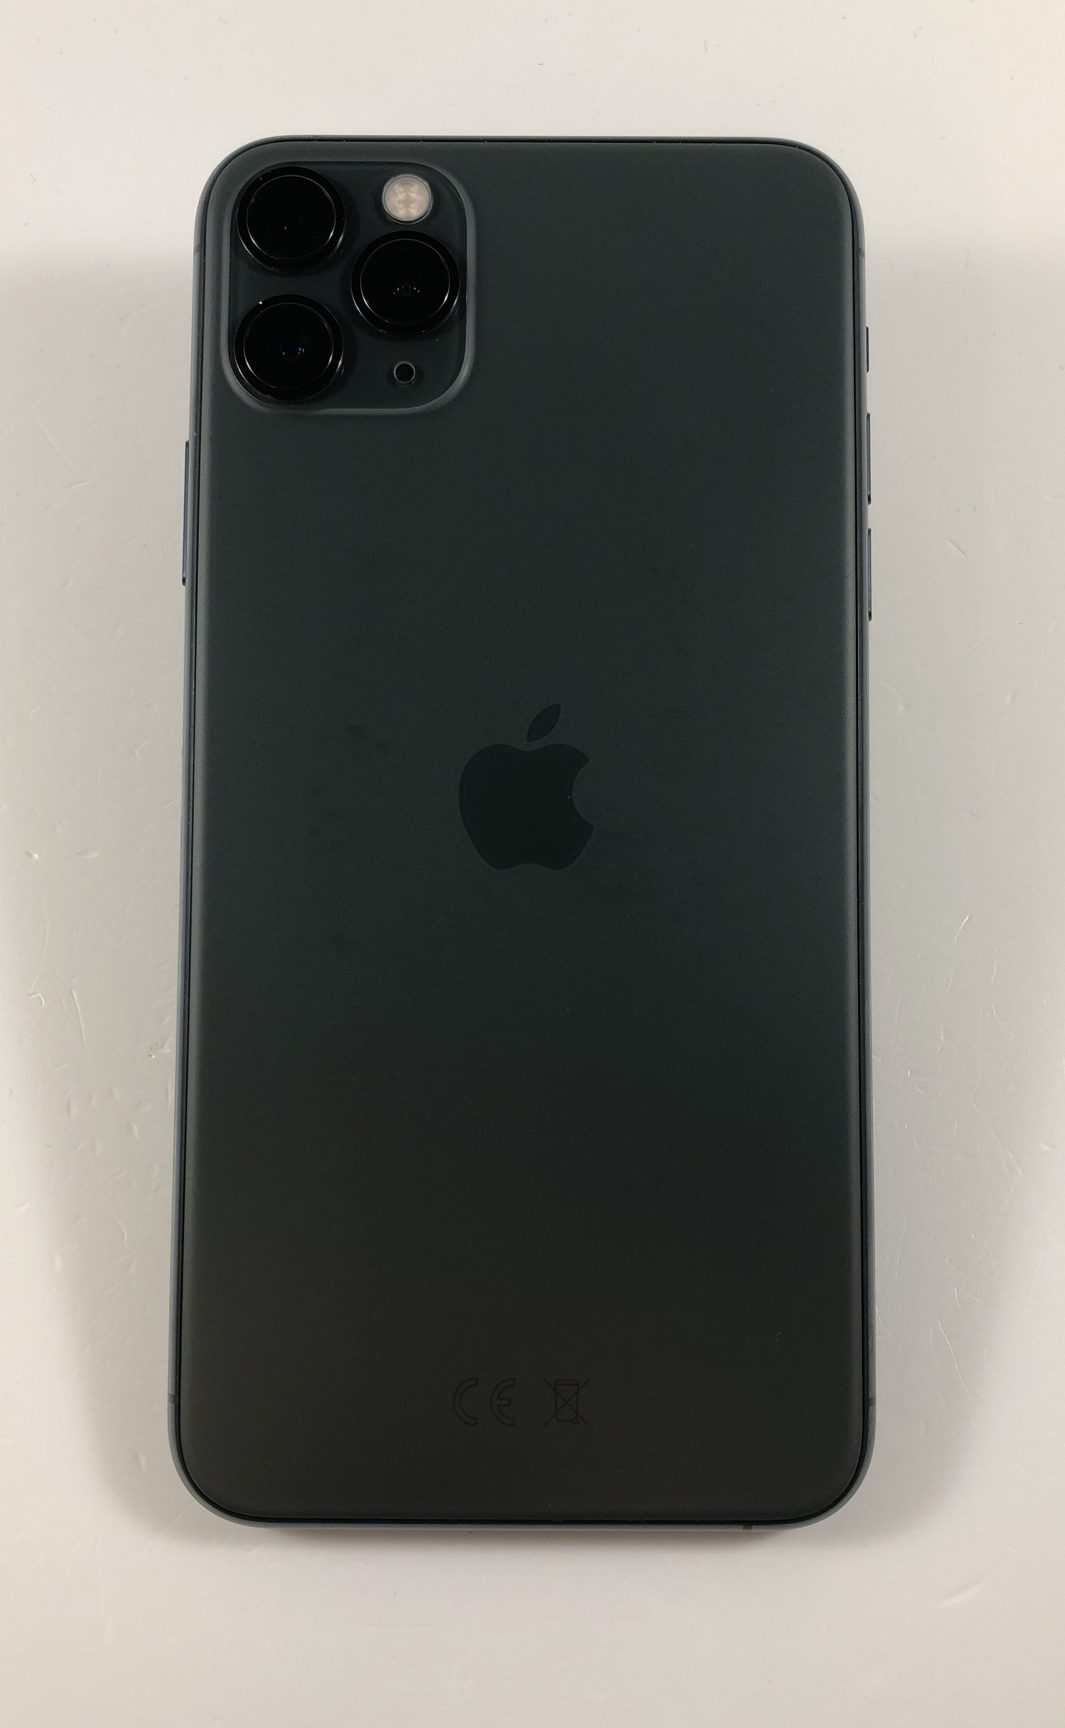 iPhone 11 Pro Max 256GB, 256GB, Midnight Green, bild 2